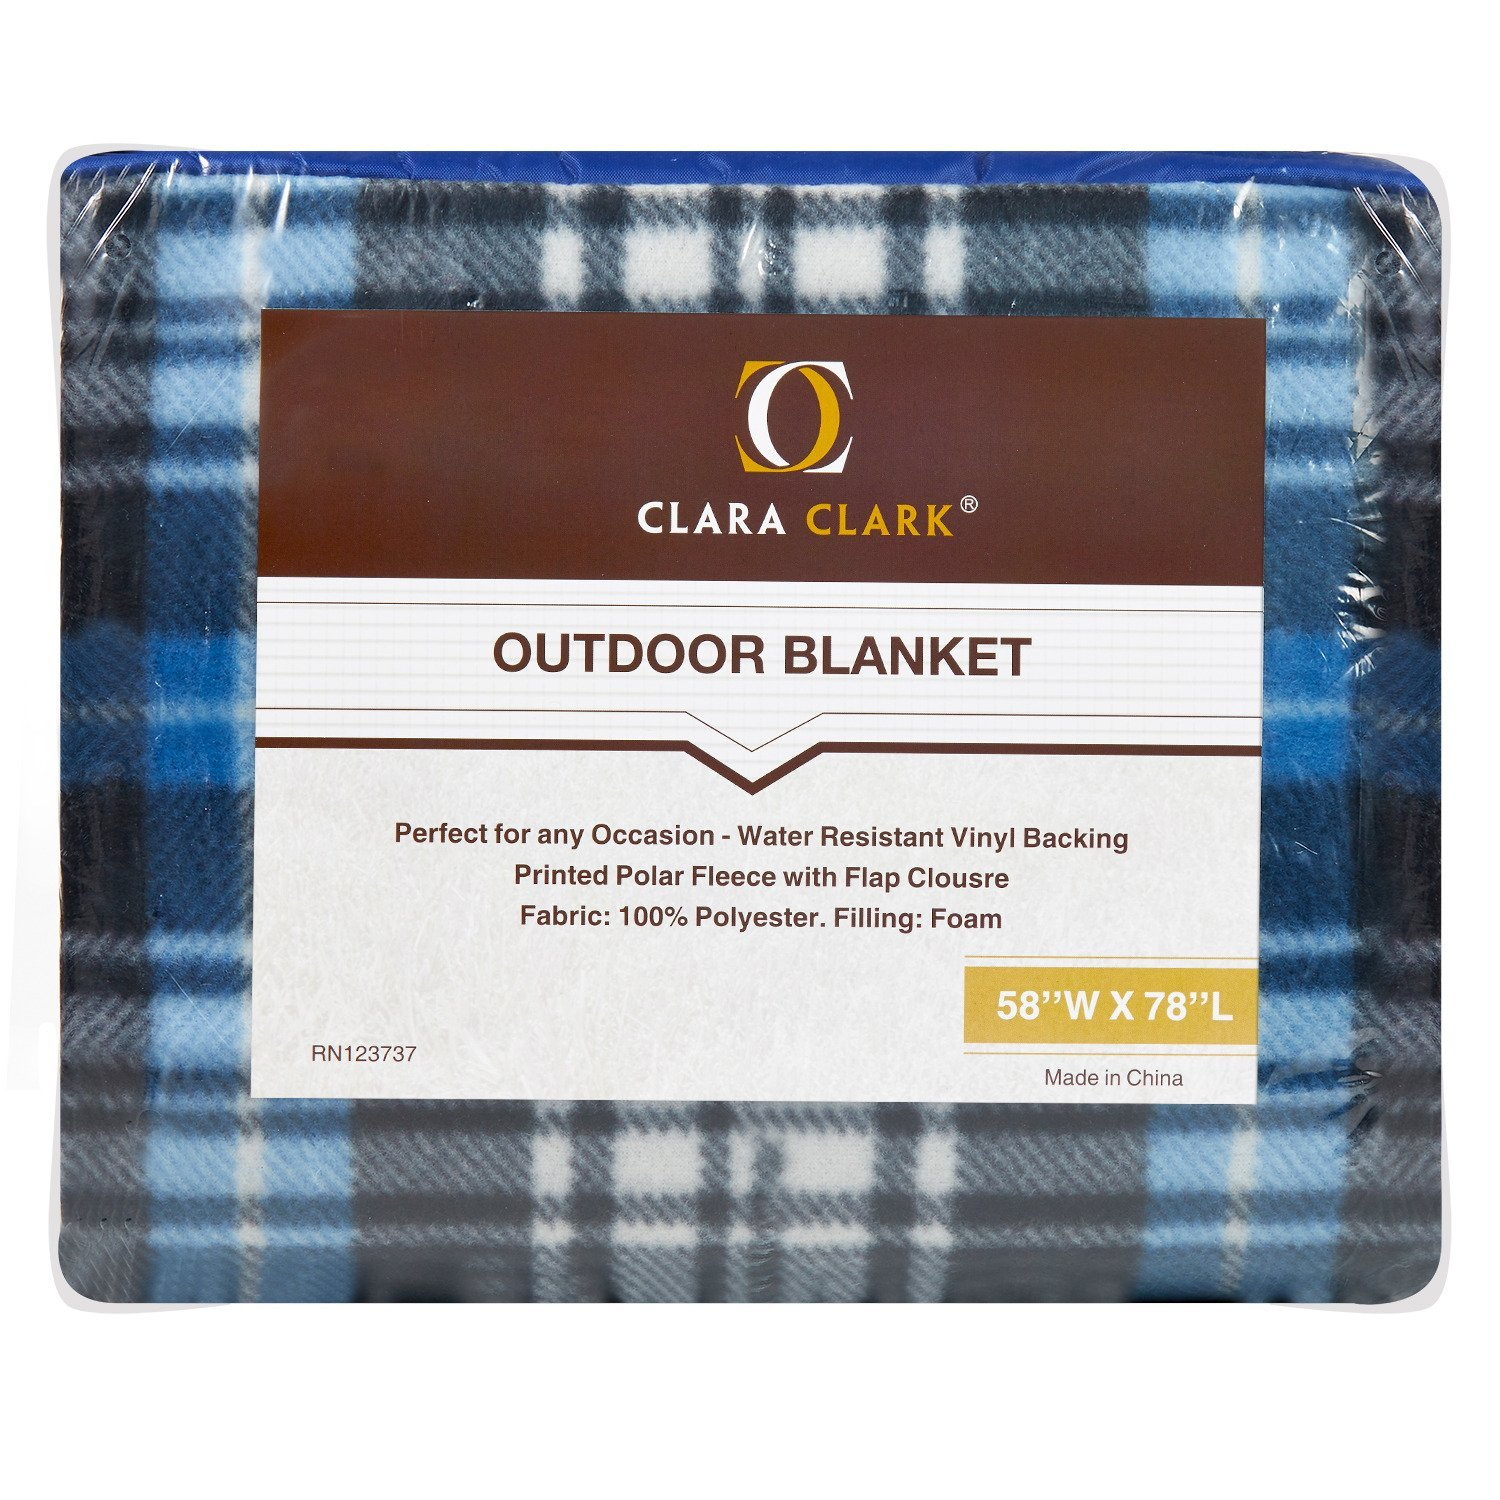 """Carrying Straps Vend/_picn-blnkt/_pastl Lightweight and Foldable Water Resistant Mildew Resistant Material Clara Clark Camping Extra Large 58/"""" x 78/"""" Picnic Outdoor Blanket Pastel Stripes"""